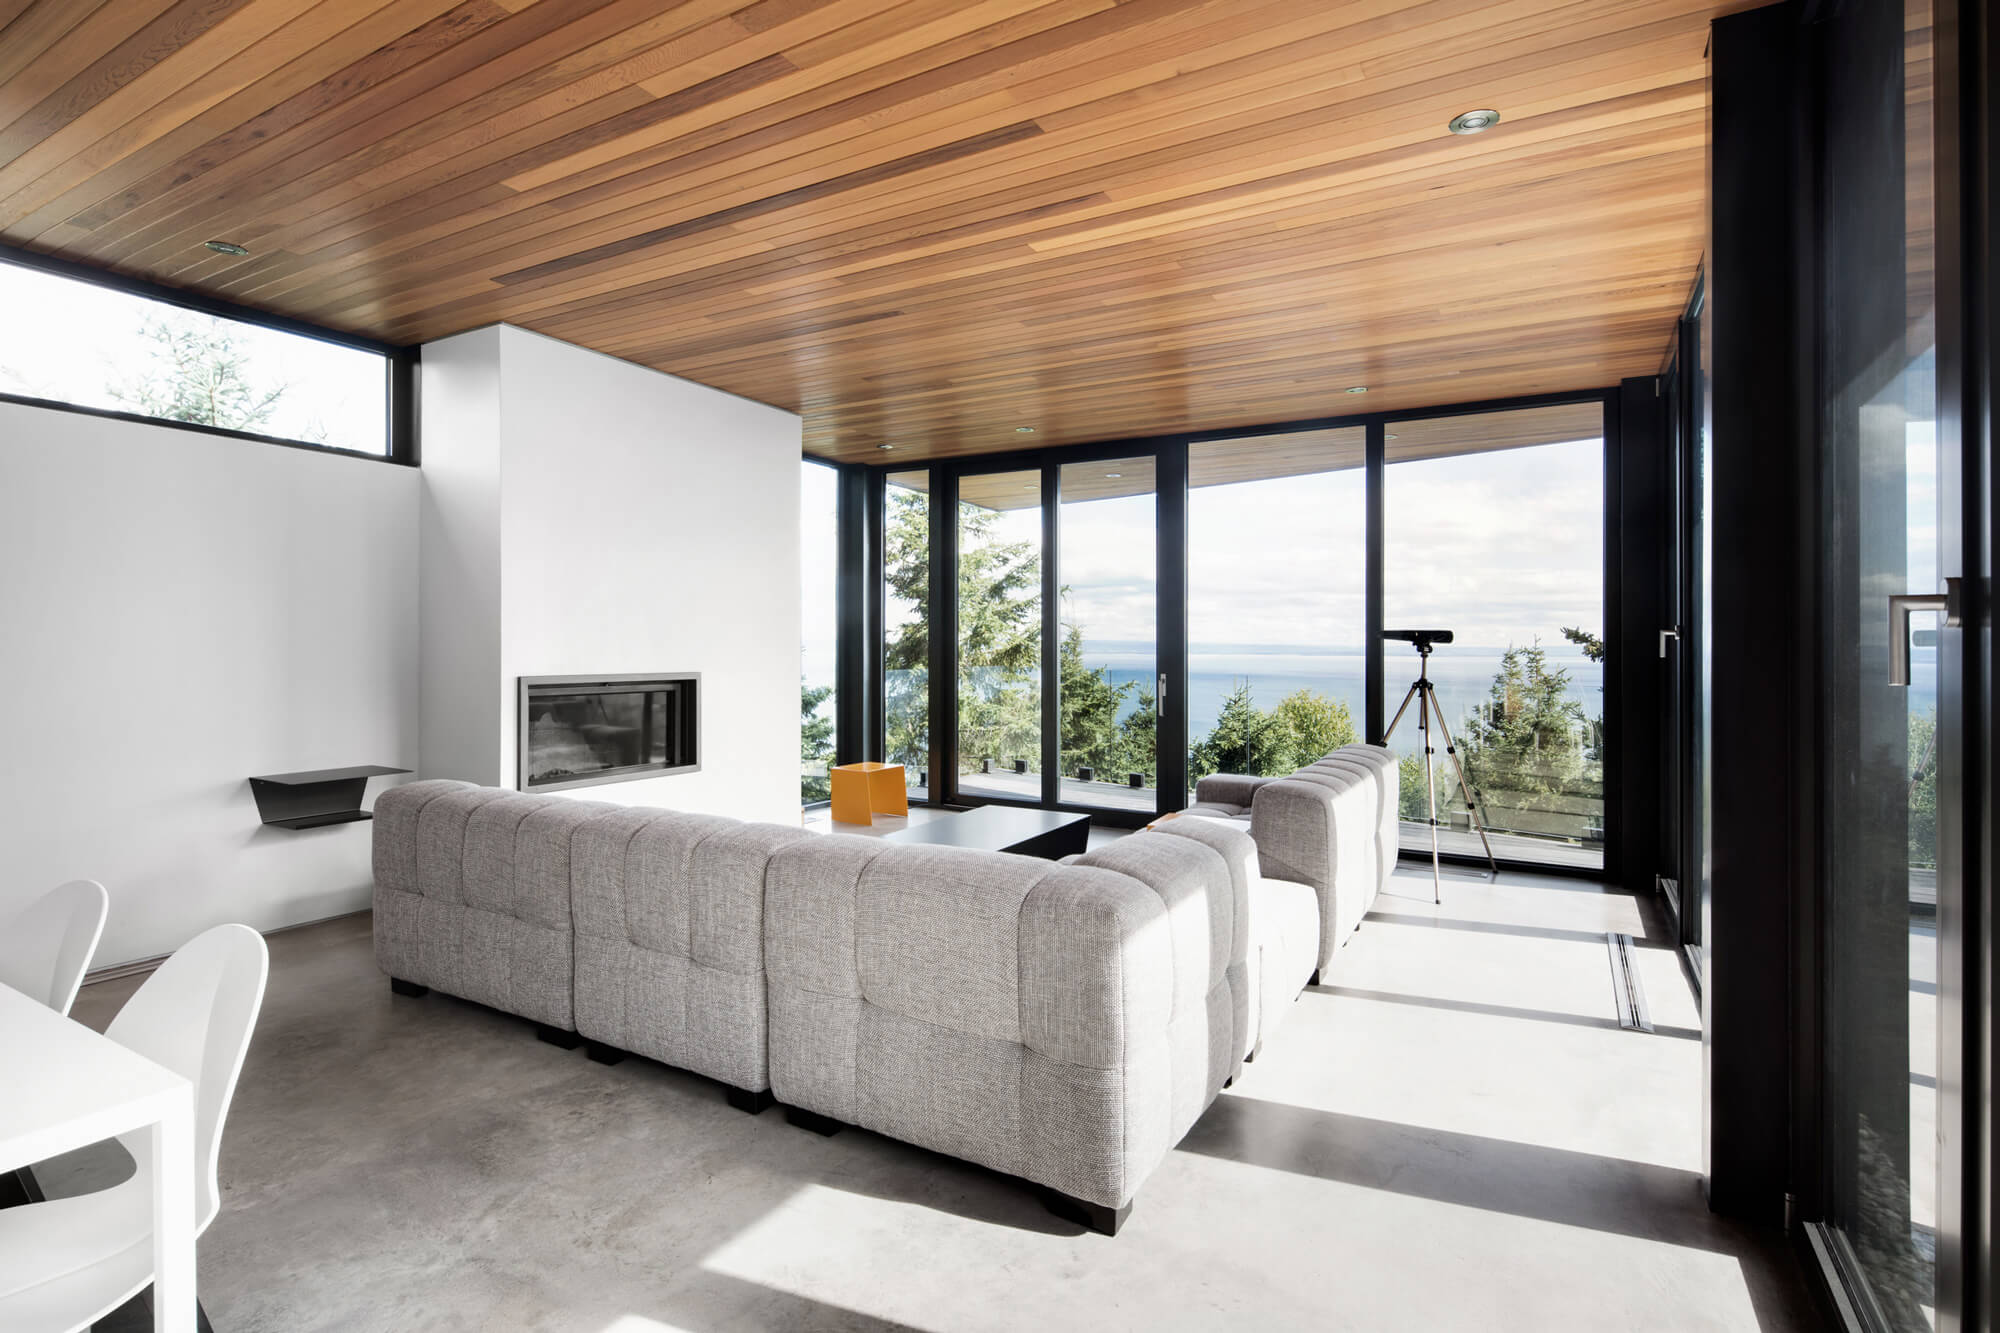 370_BOURGEOIS-LECHASSEUR-ARCHITECTES_RESIDENCE-ALTAIR_04